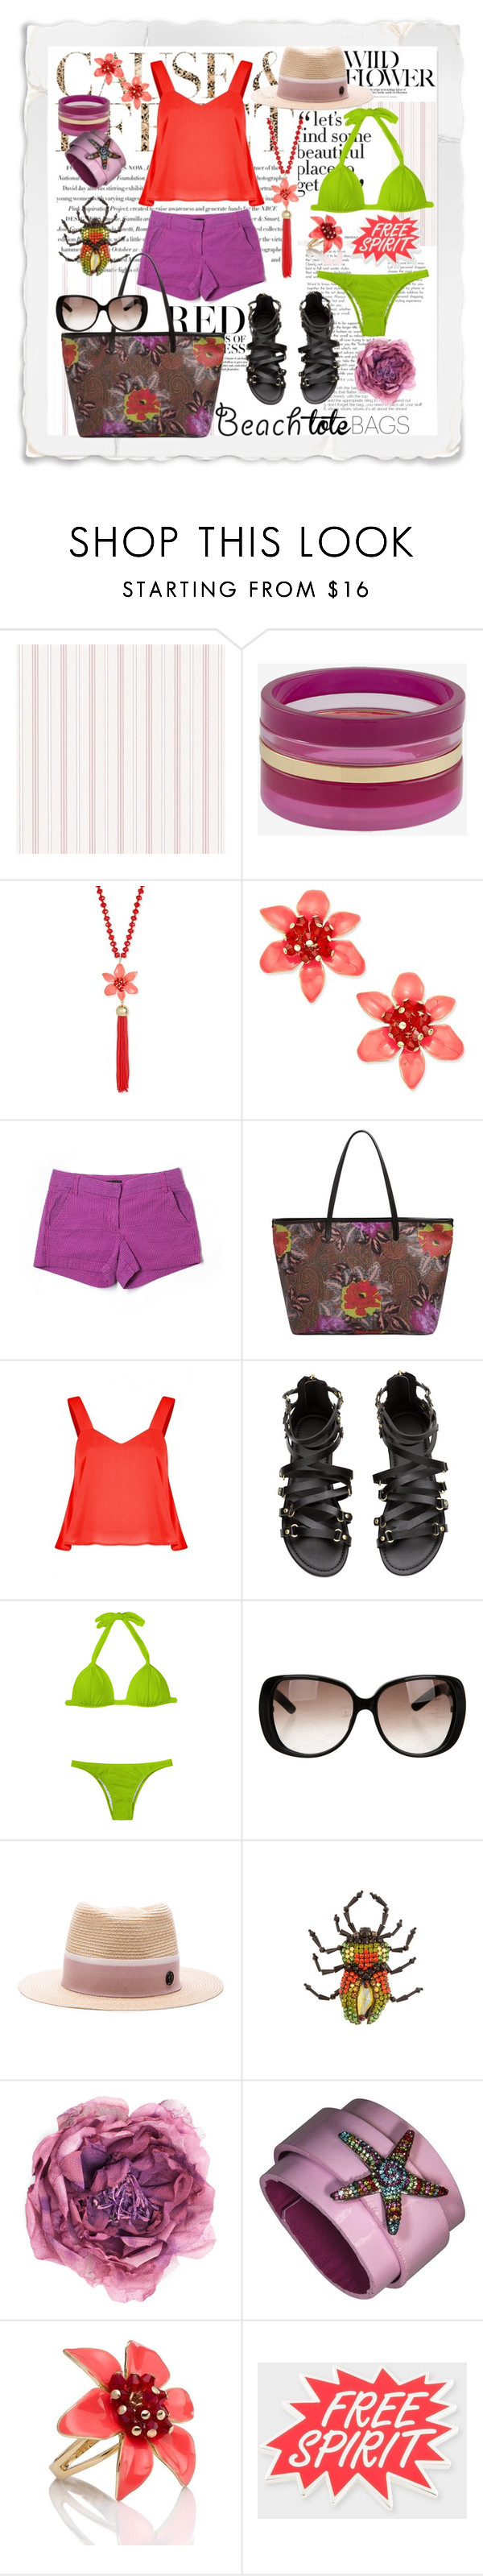 """""""beach spirit"""" by jennross76 ❤ liked on Polyvore featuring Envi, French Connection, Kate Spade, J.Crew, Etro, Gucci, Maison Michel, Paul Smith and beachtotes"""